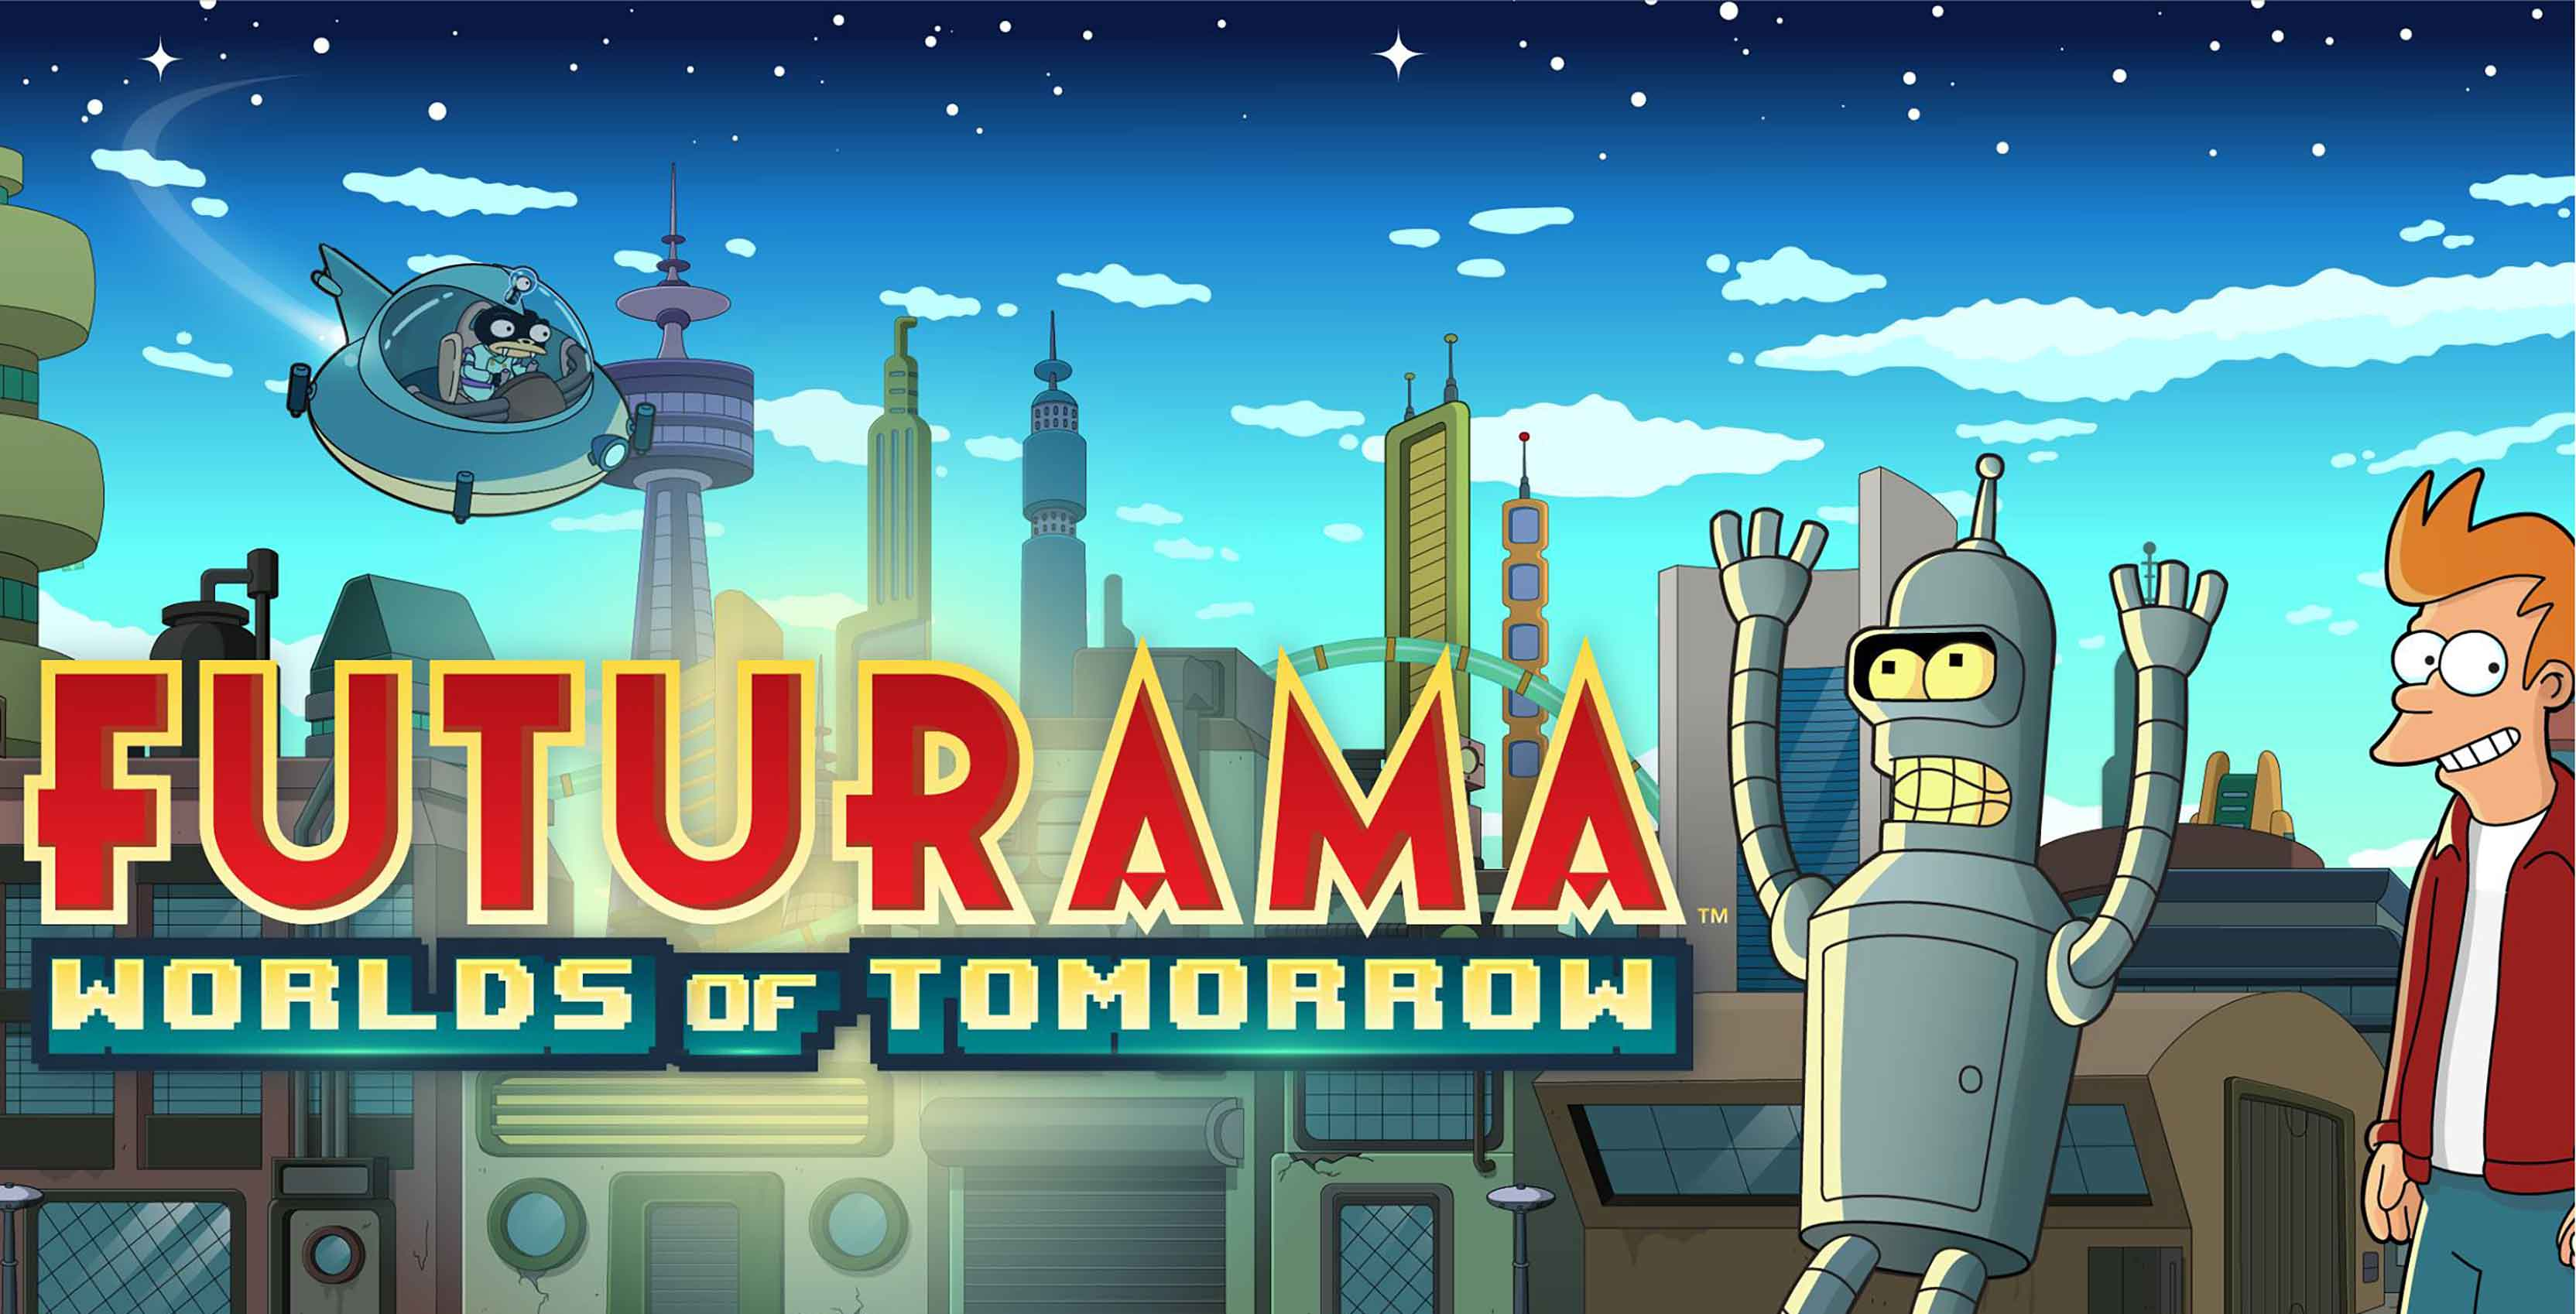 Futurama World of Tomorrow game